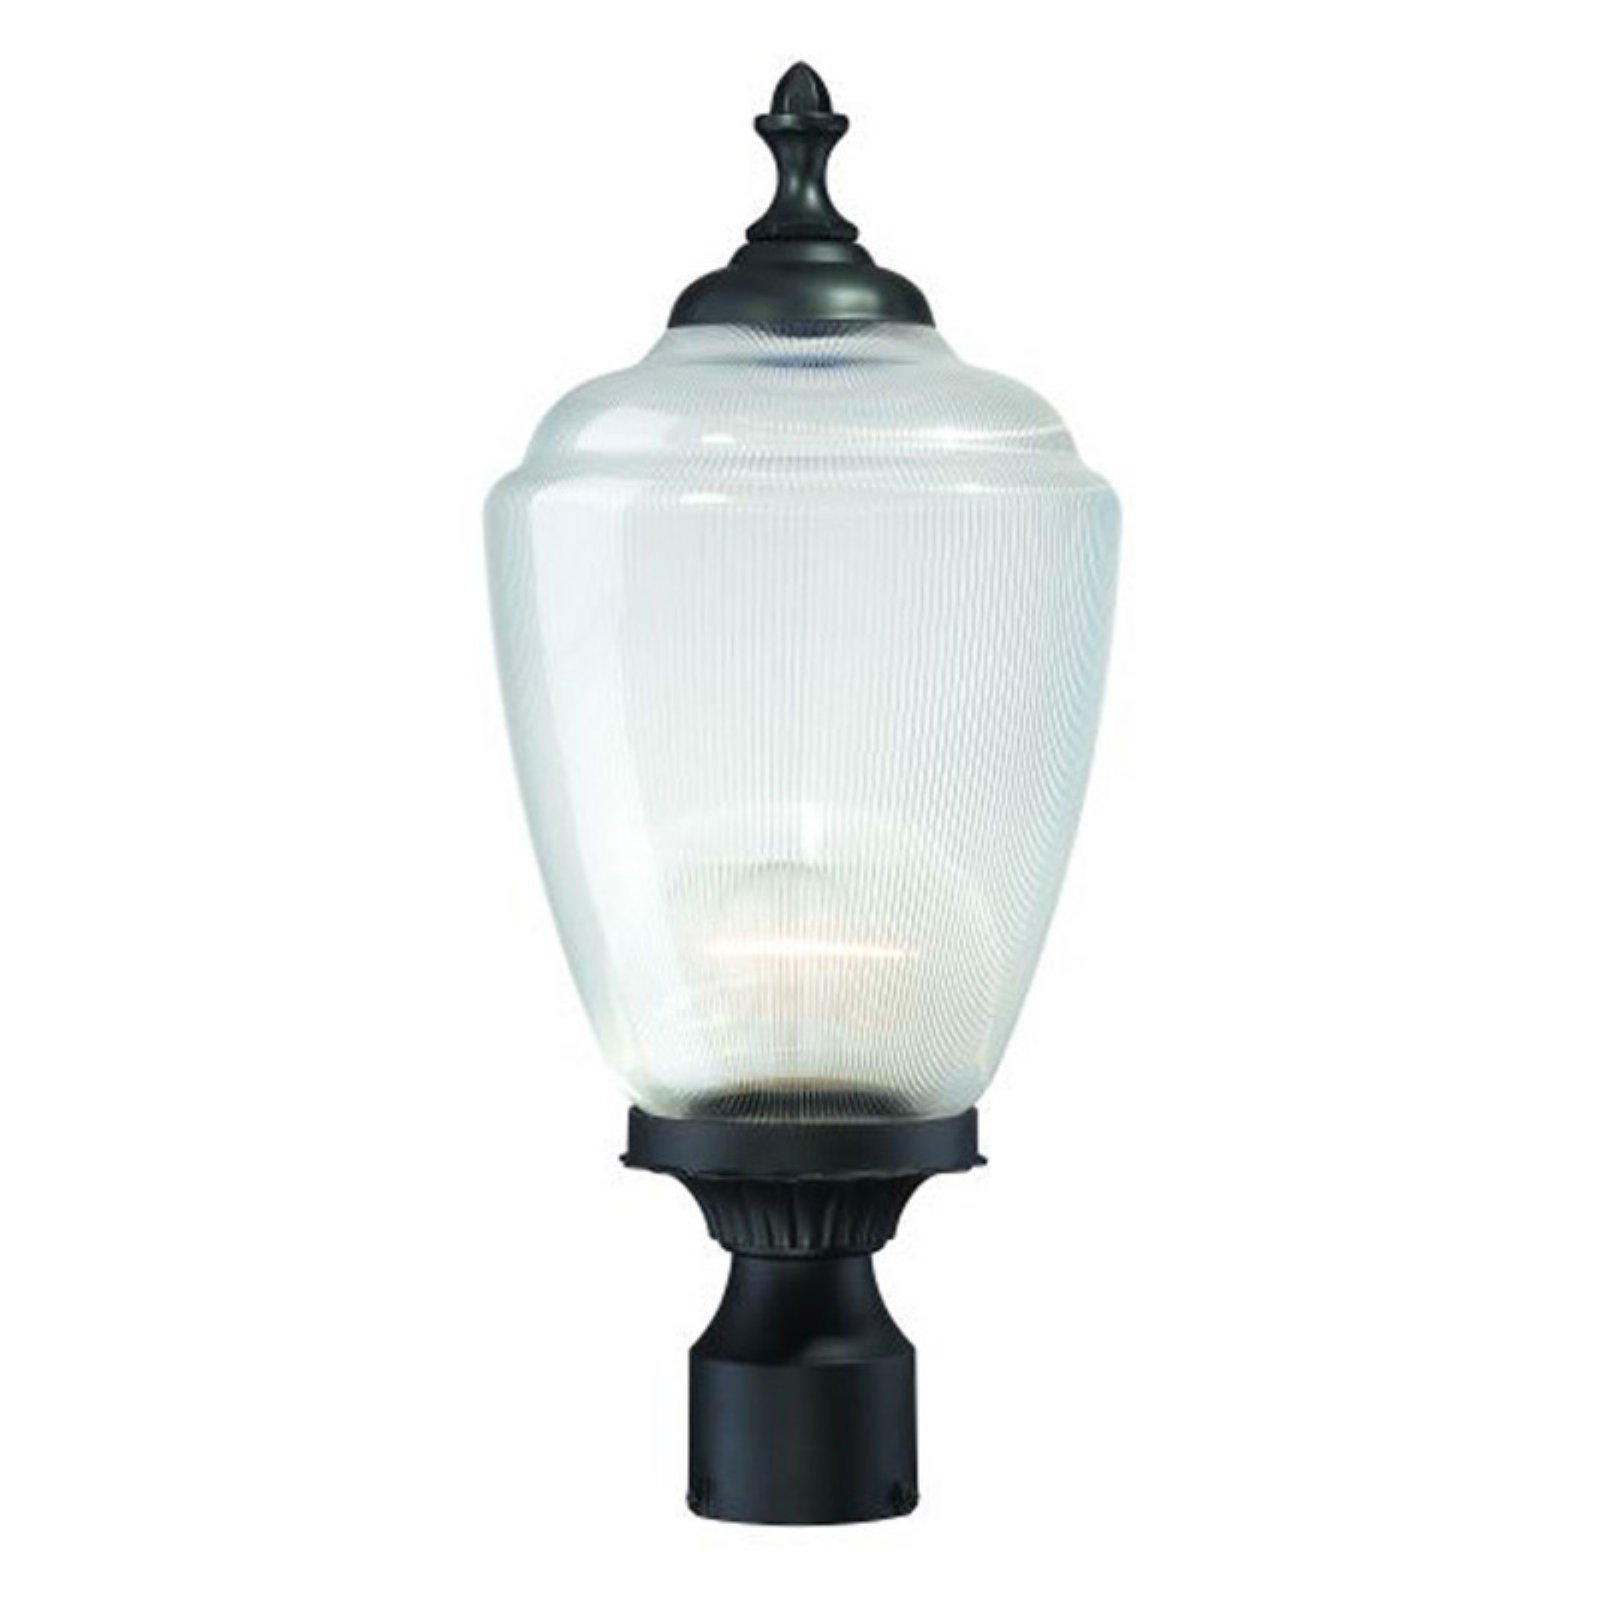 Acclaim Lighting Acorn Outdoor Post Mount Light Fixture